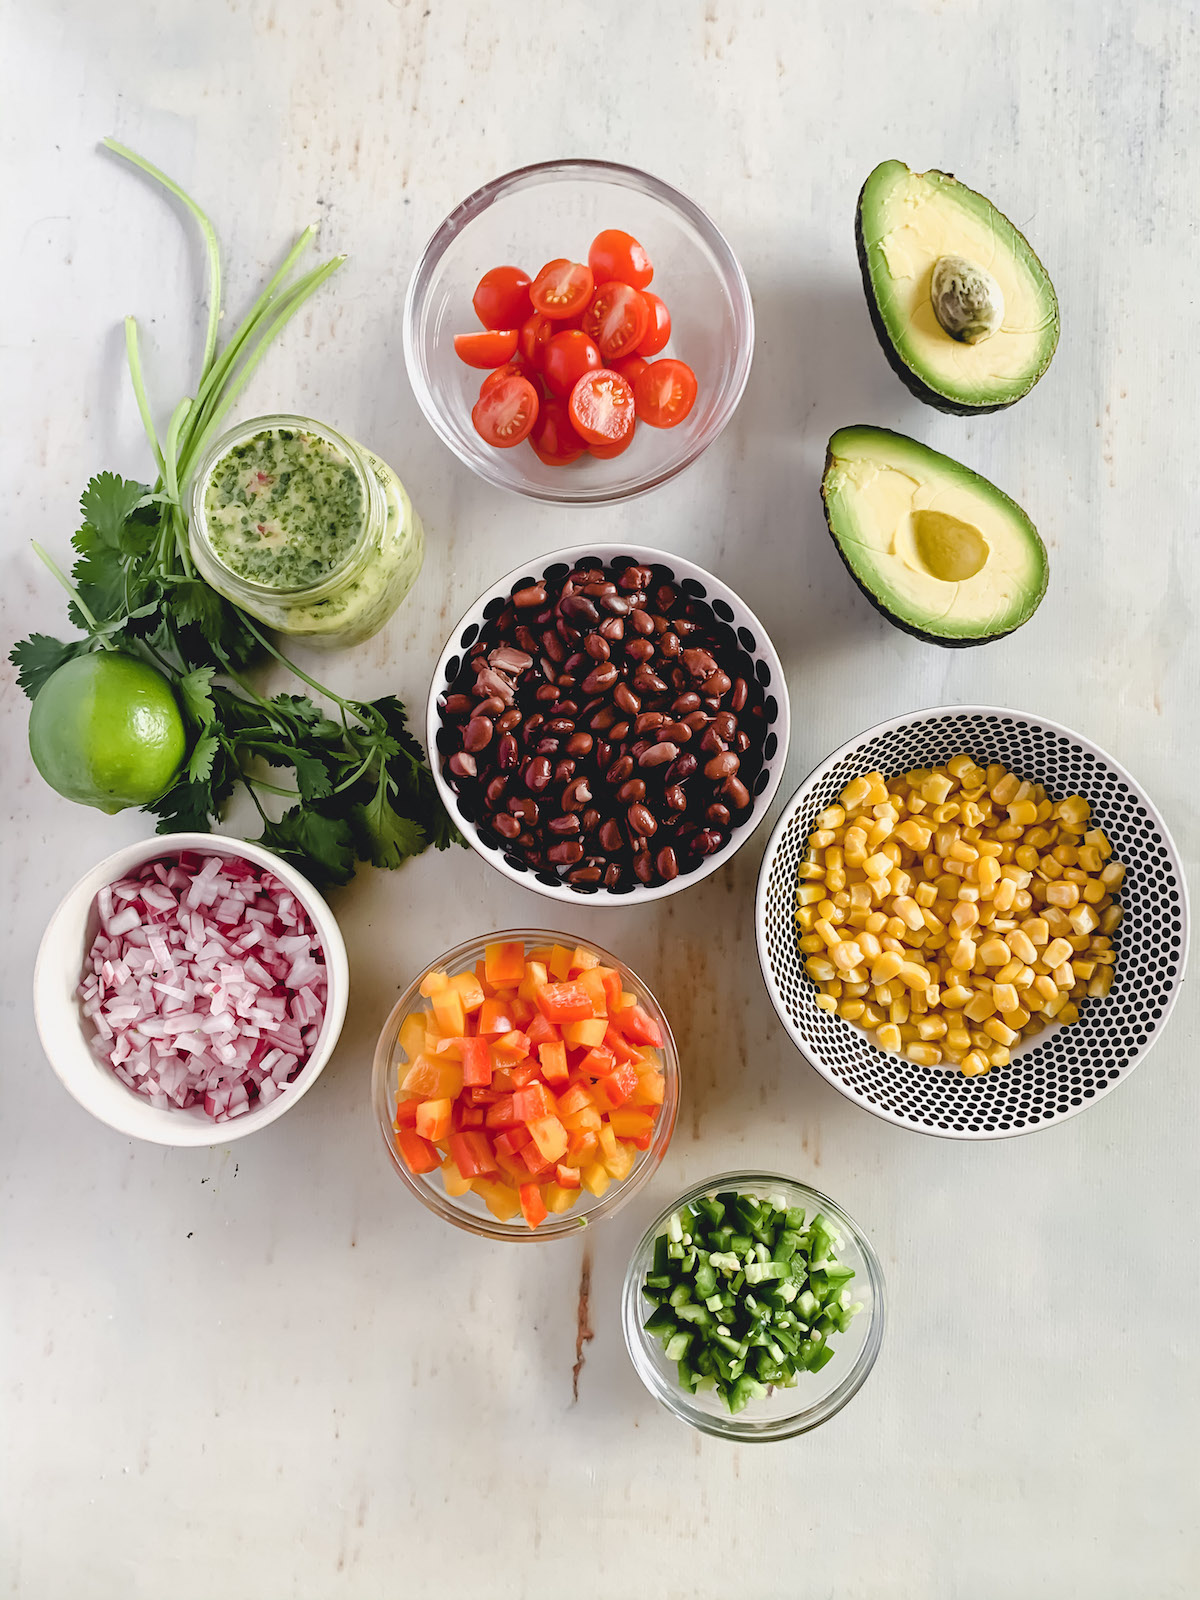 Fiesta salad ingredients on a white background. Black beans, corn, diced red onion, diced peppers all in little bowls. Mason jar with cilantro lime vinaigrette next to bunch of cilantro and fresh lime and an avocado sliced in half.